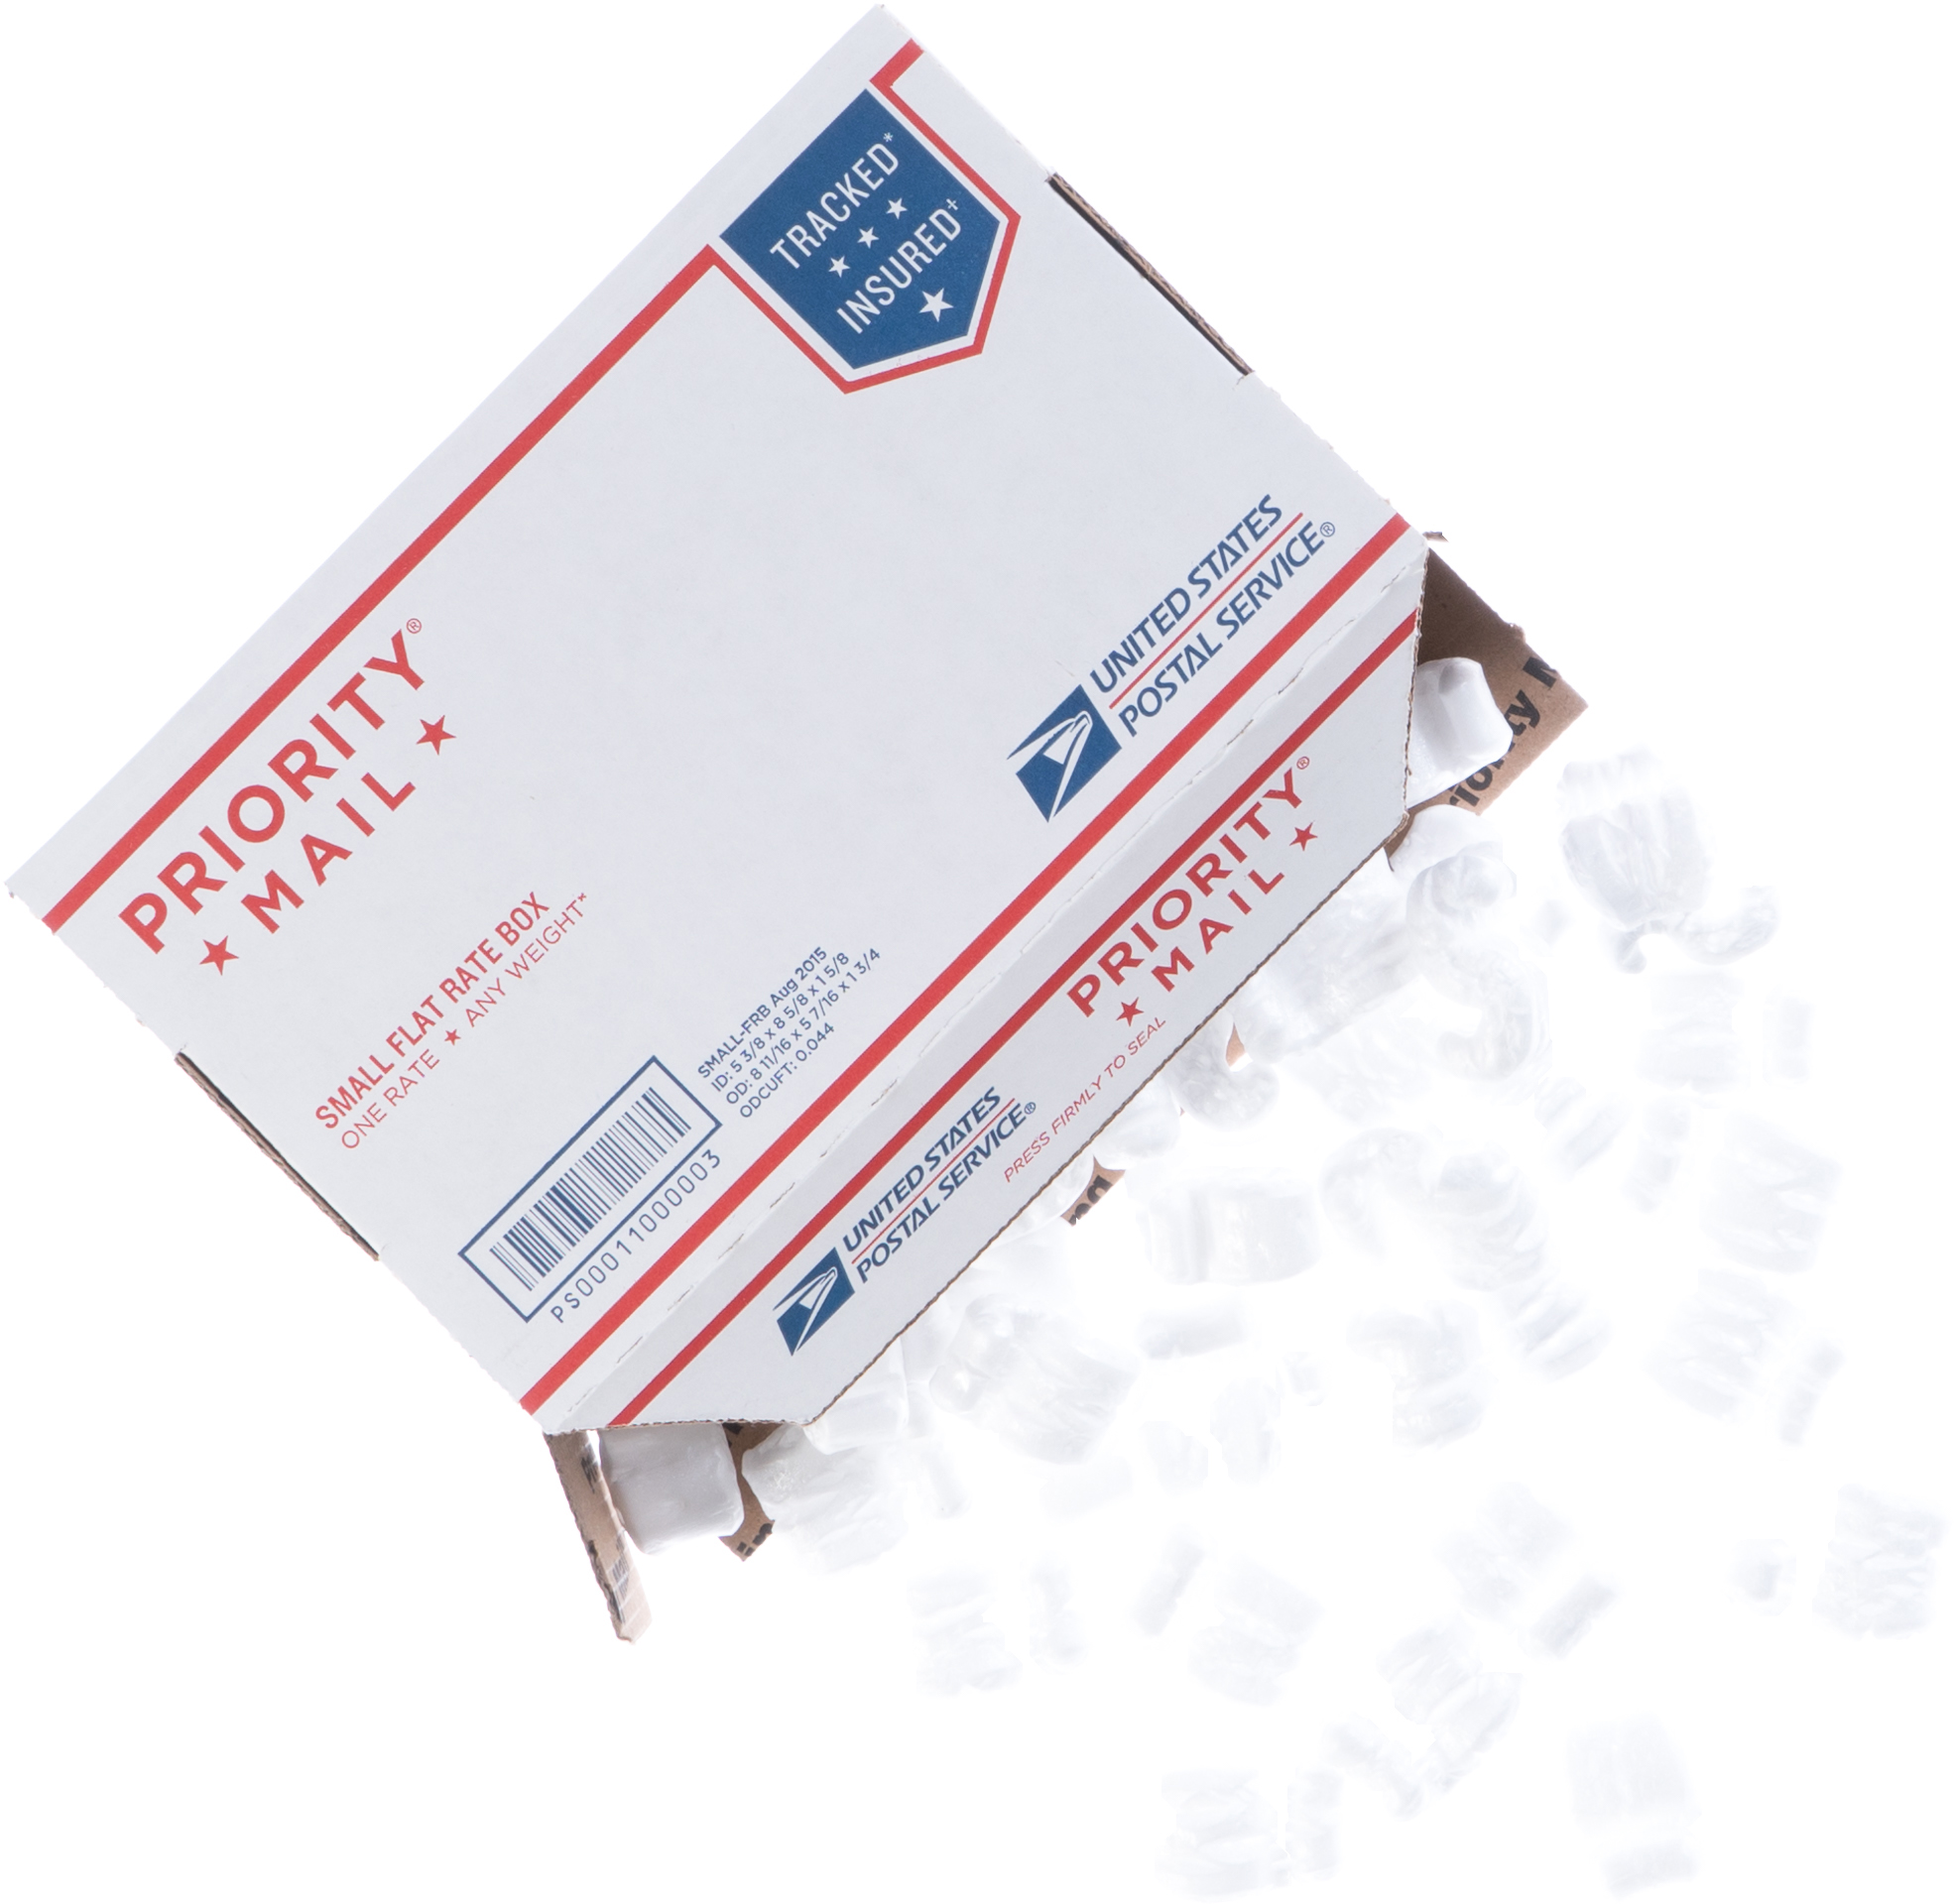 Priority Mail Small Flat Rate box with shipping peanuts